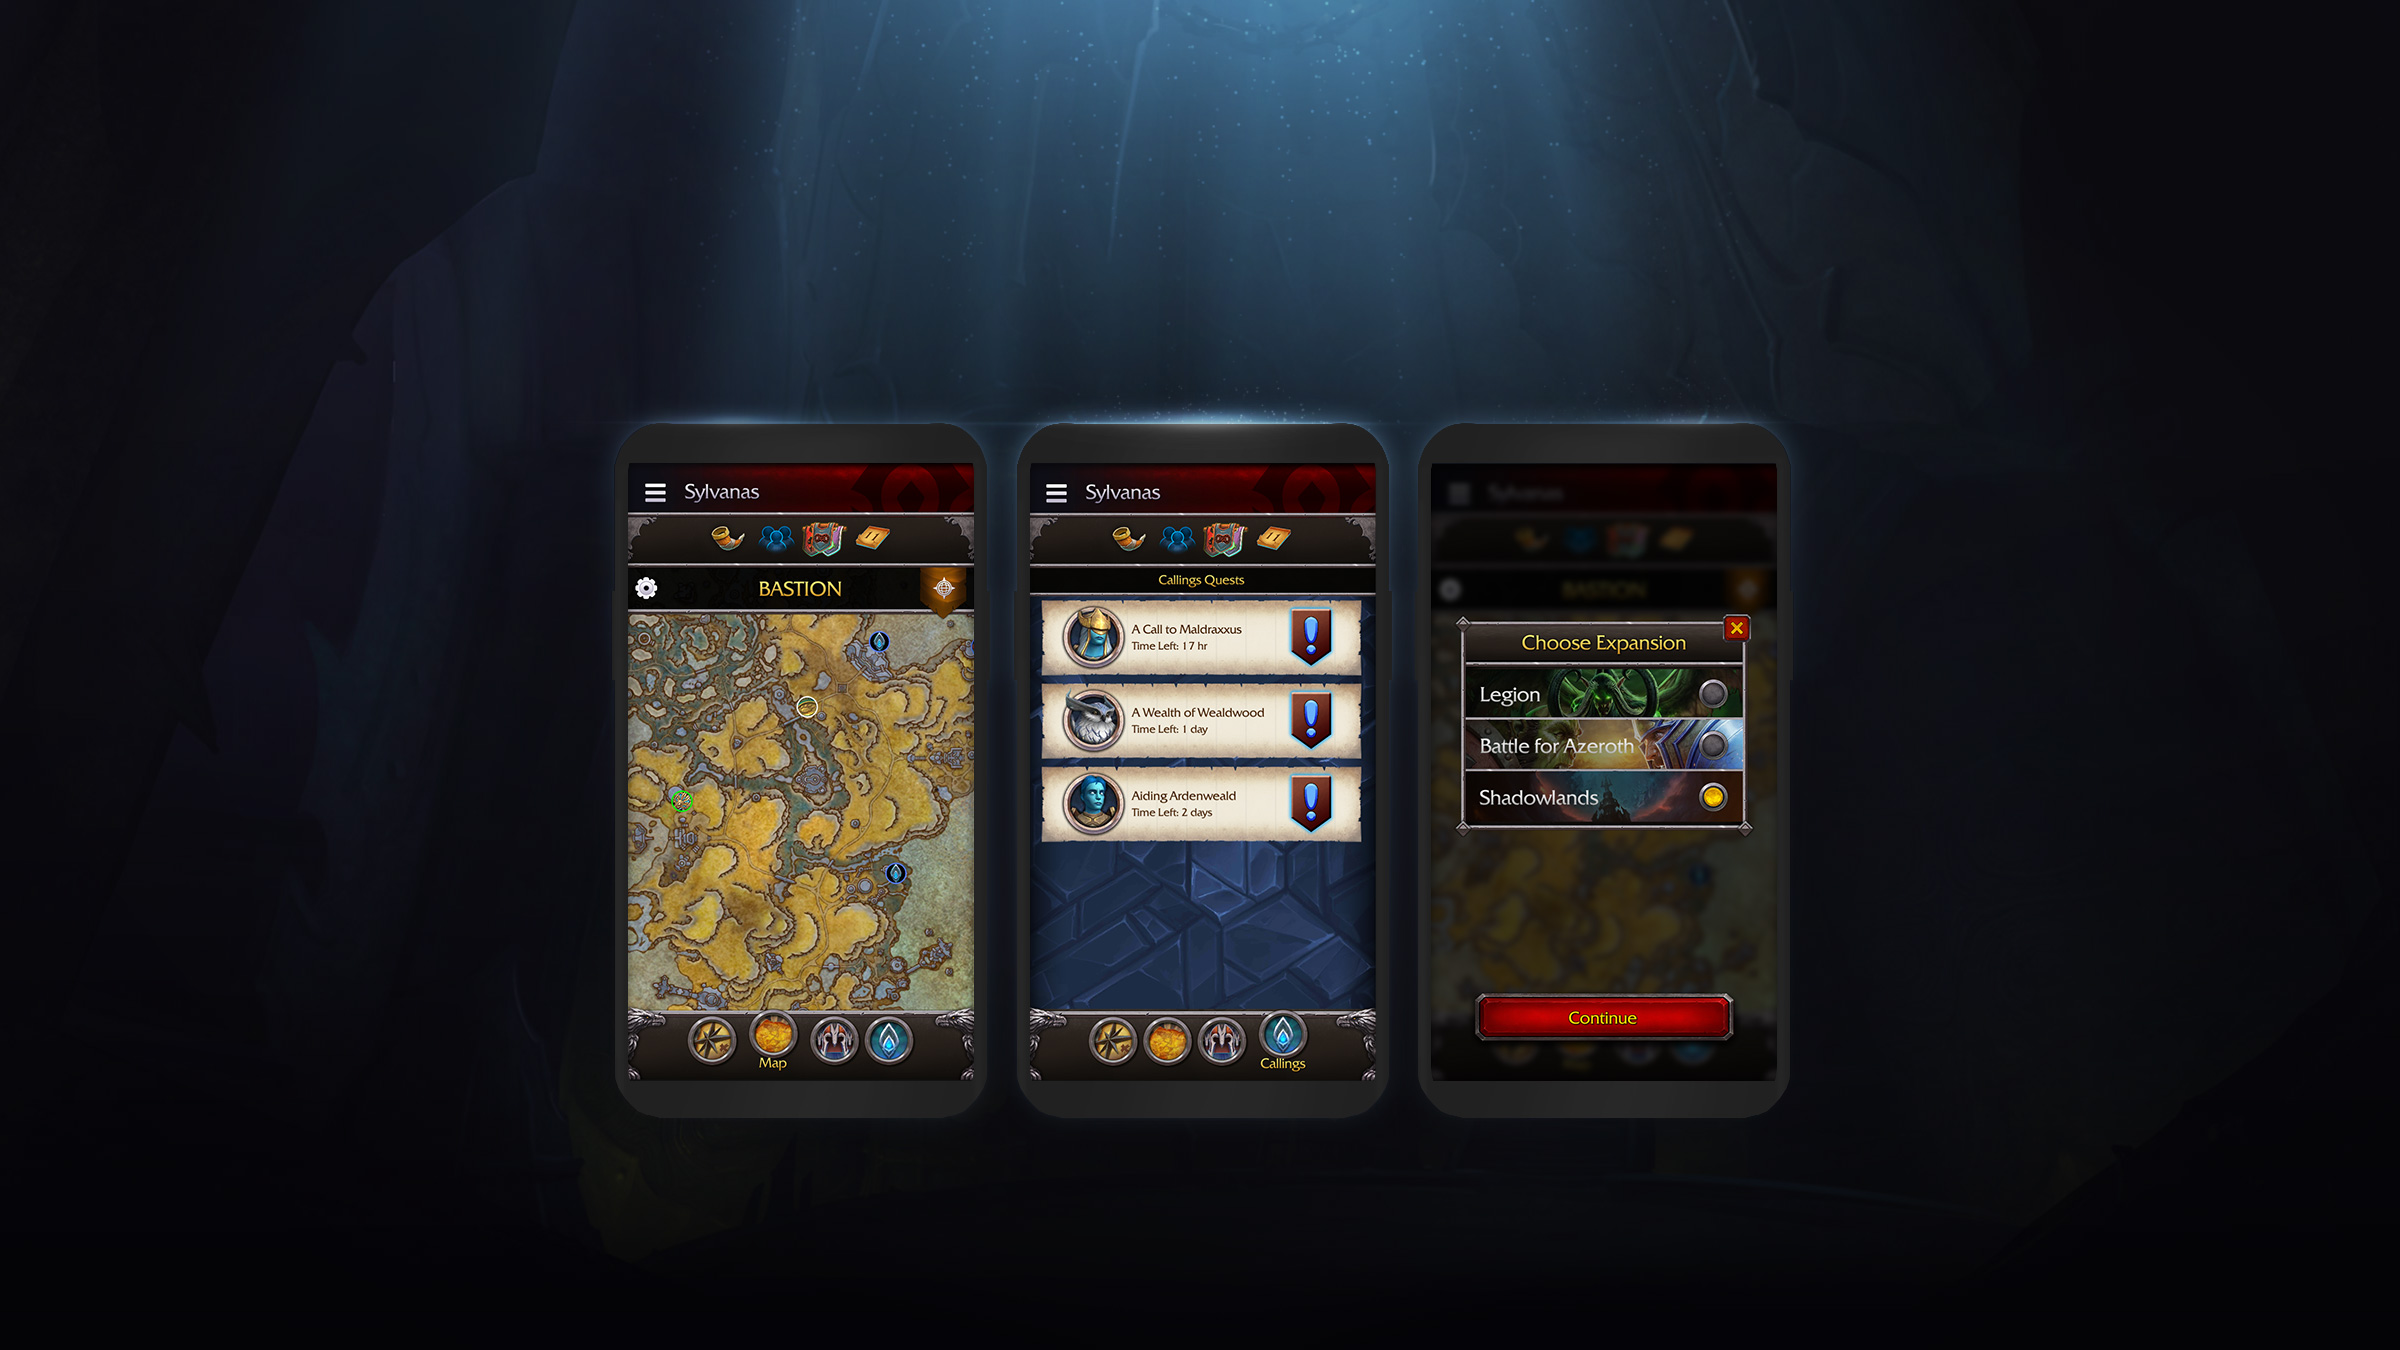 Shadowlands Preview: A New Look for the WoW Companion App